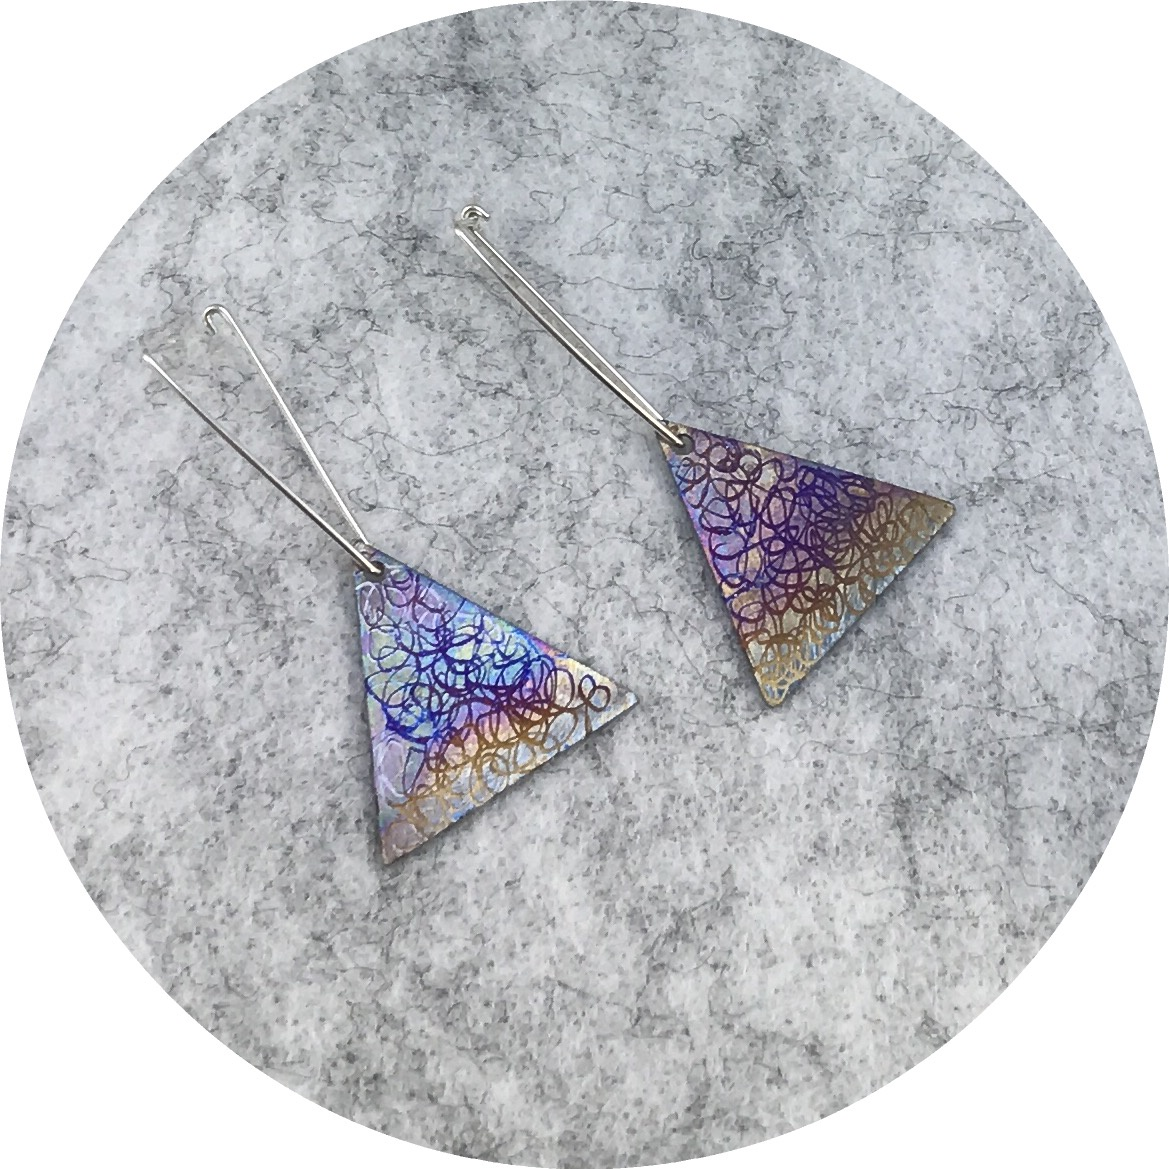 Tanja Von Behrens - Triangle Lighting Storm Earrings in Sterling Silver and Heat Coloured Titanium.